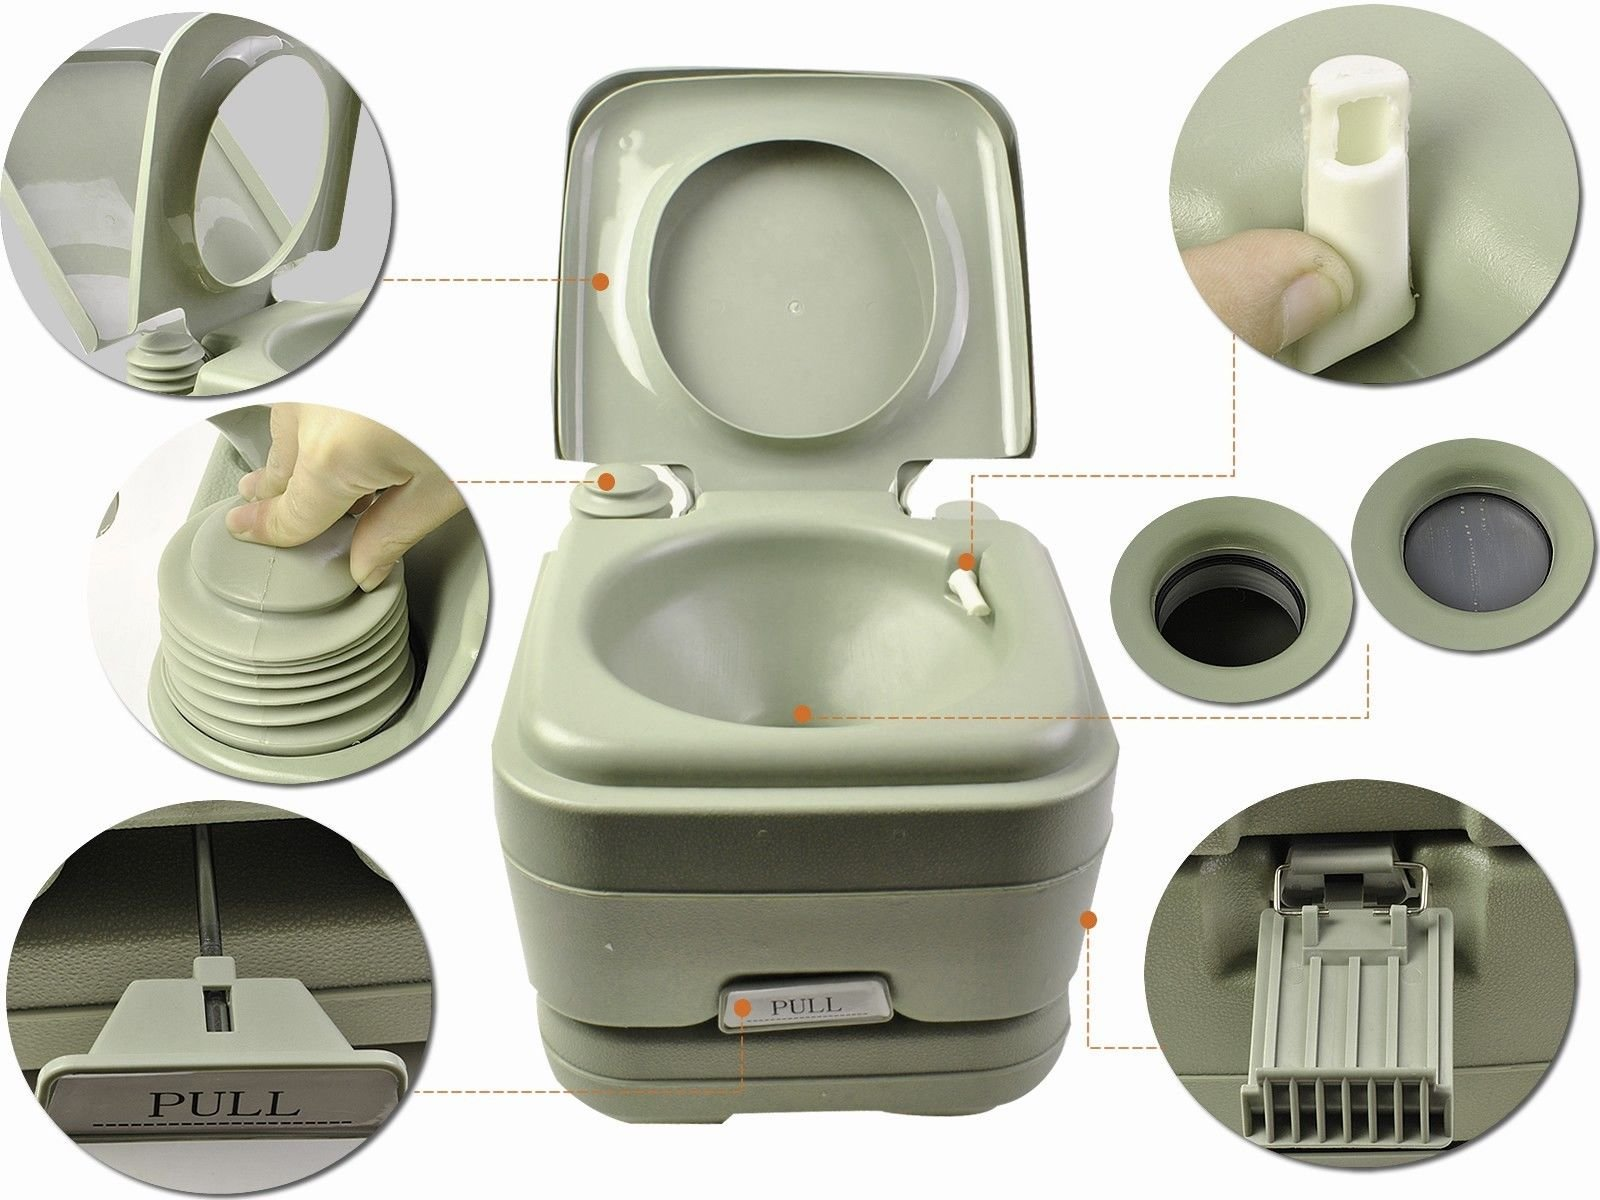 JDM Auto Lights 2.8 Gallon Portable Toilet Flush Travel Outdoor Camping Hiking Toilet Potty 10l by JDM Auto Lights (Image #2)